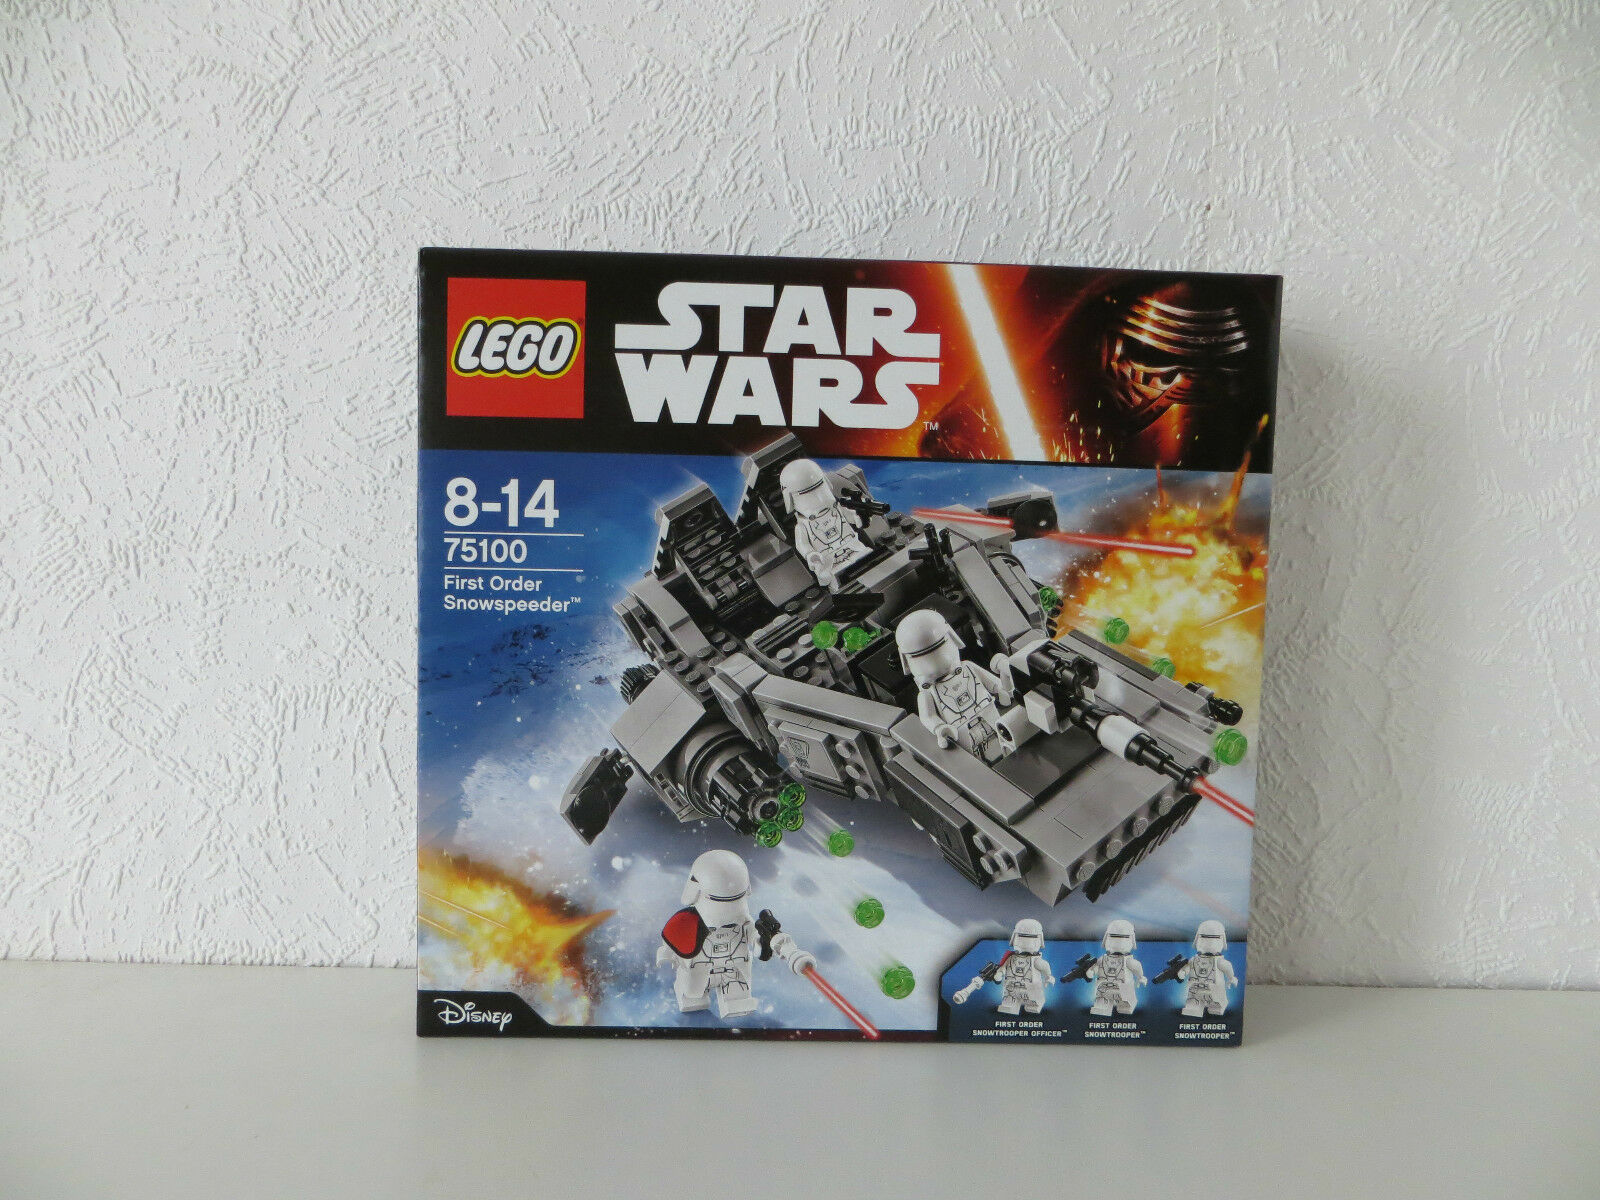 Lego Star Wars 75100 75100 75100 First Order Snowspeeder 7c870d